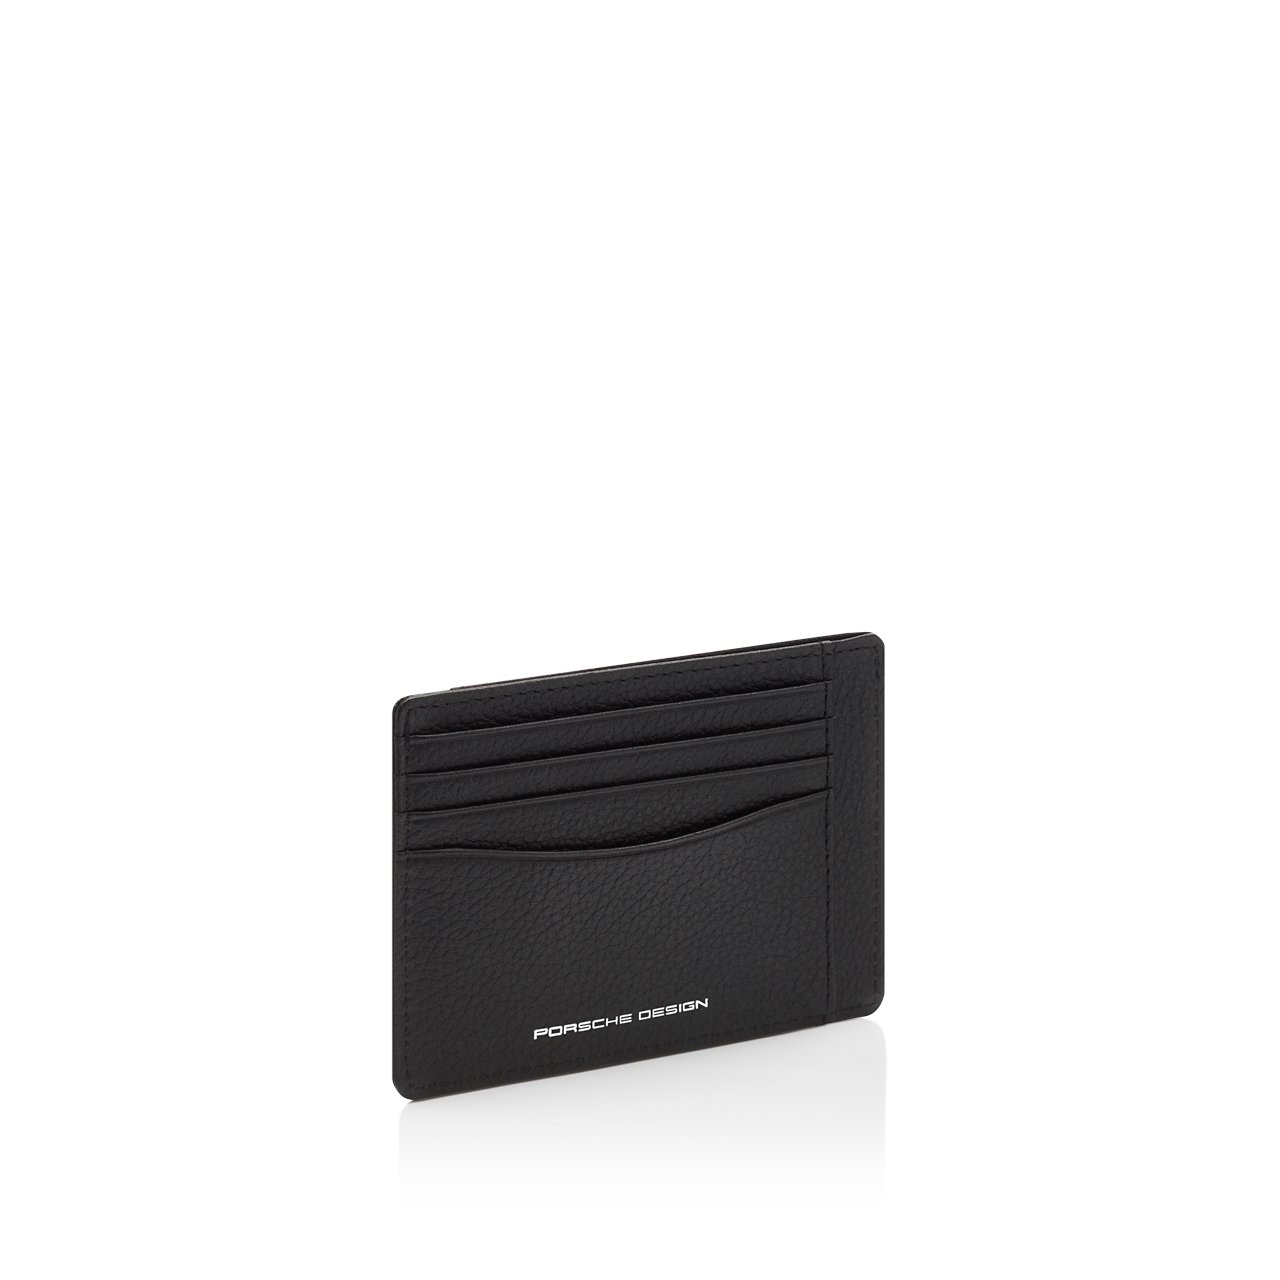 French Classic 4.1 MH4 Card Holder